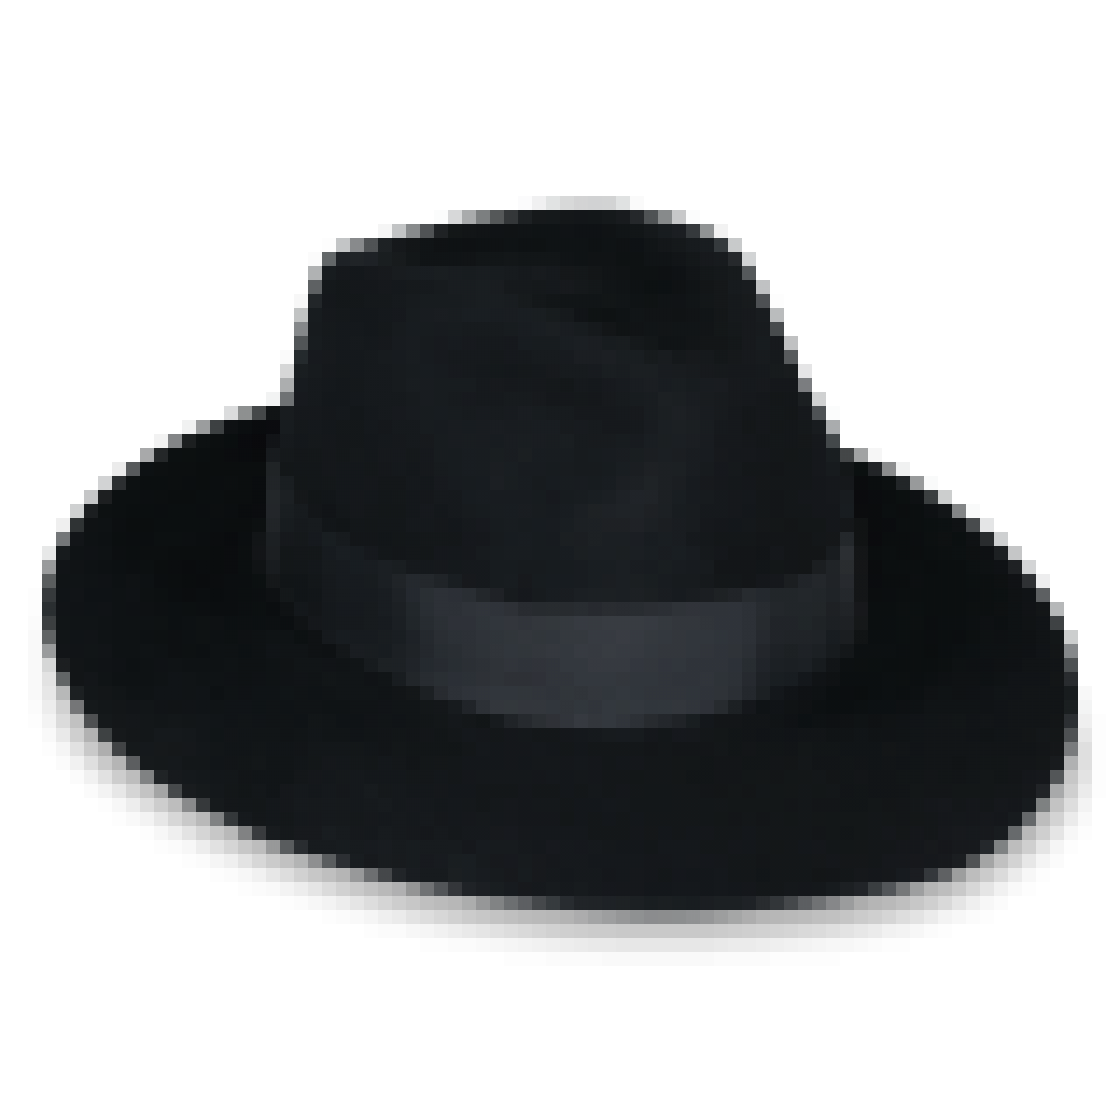 County Line Black felt Wide Brim Fedora hat right side view - Fedora Hat PNG